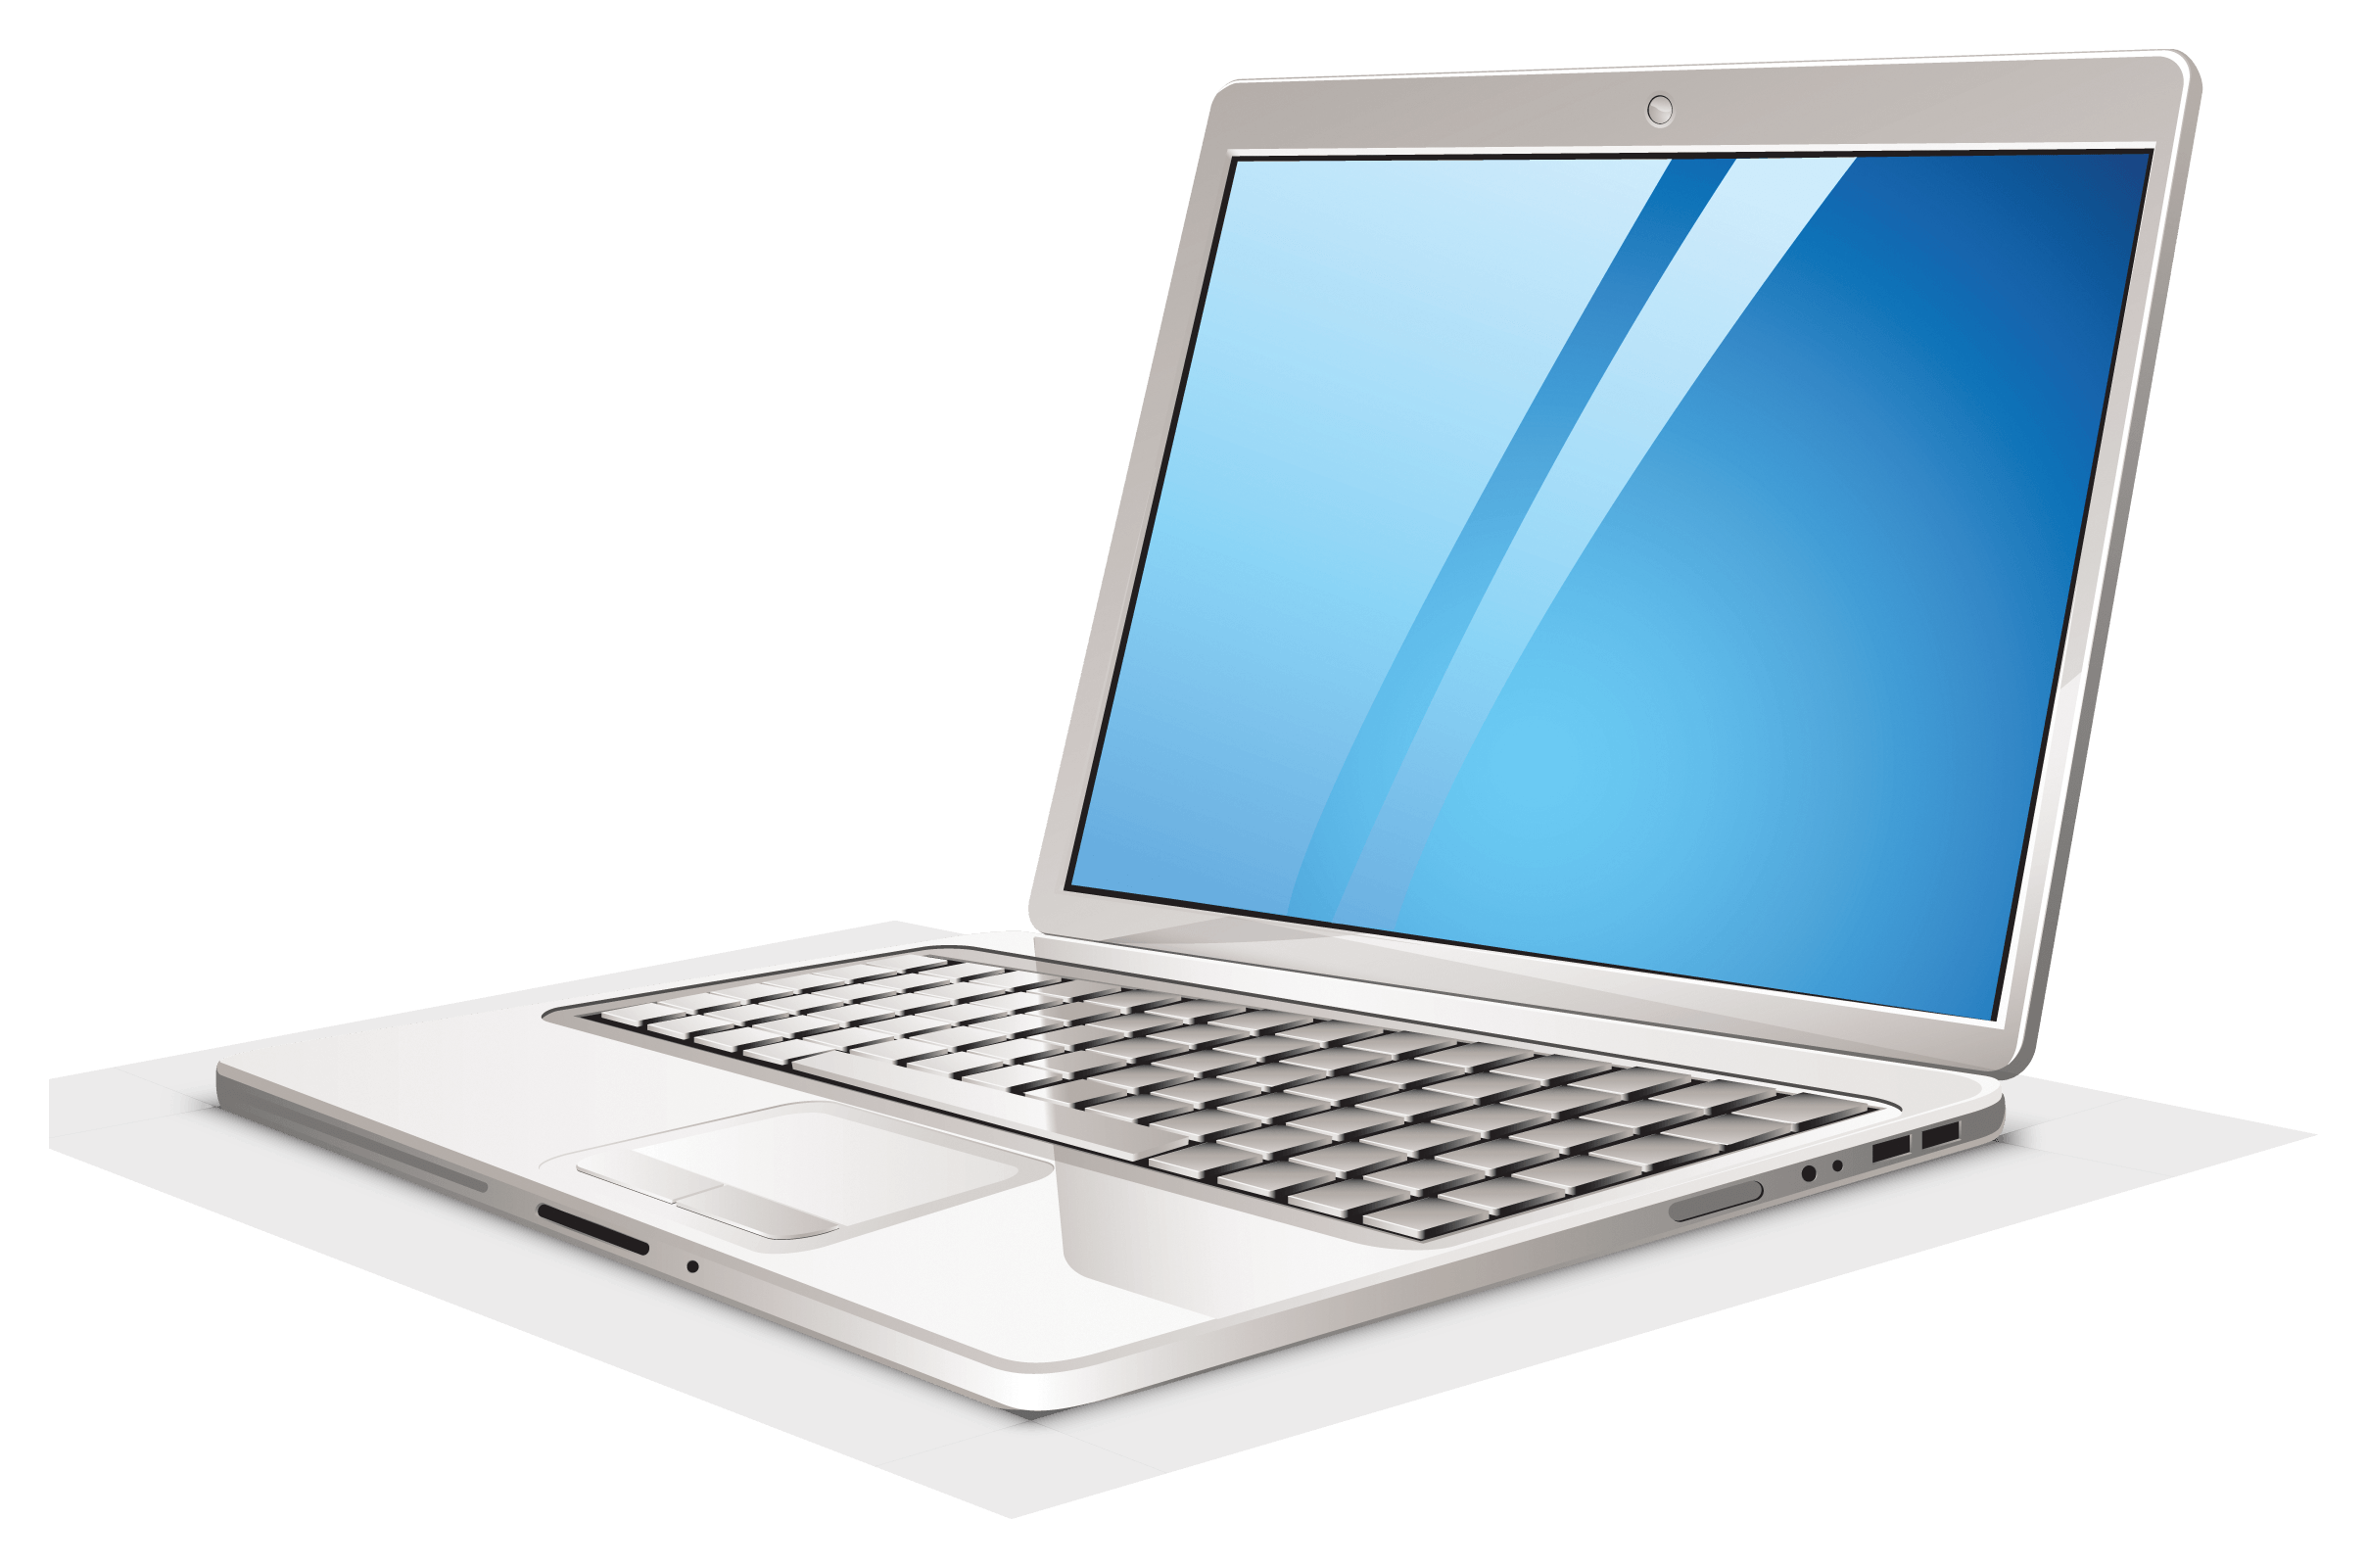 laptop The definition of a laptop is a portable computer that encompasses a microprocessor, rechargeable battery, fold-down screen, keyboard and mouse.